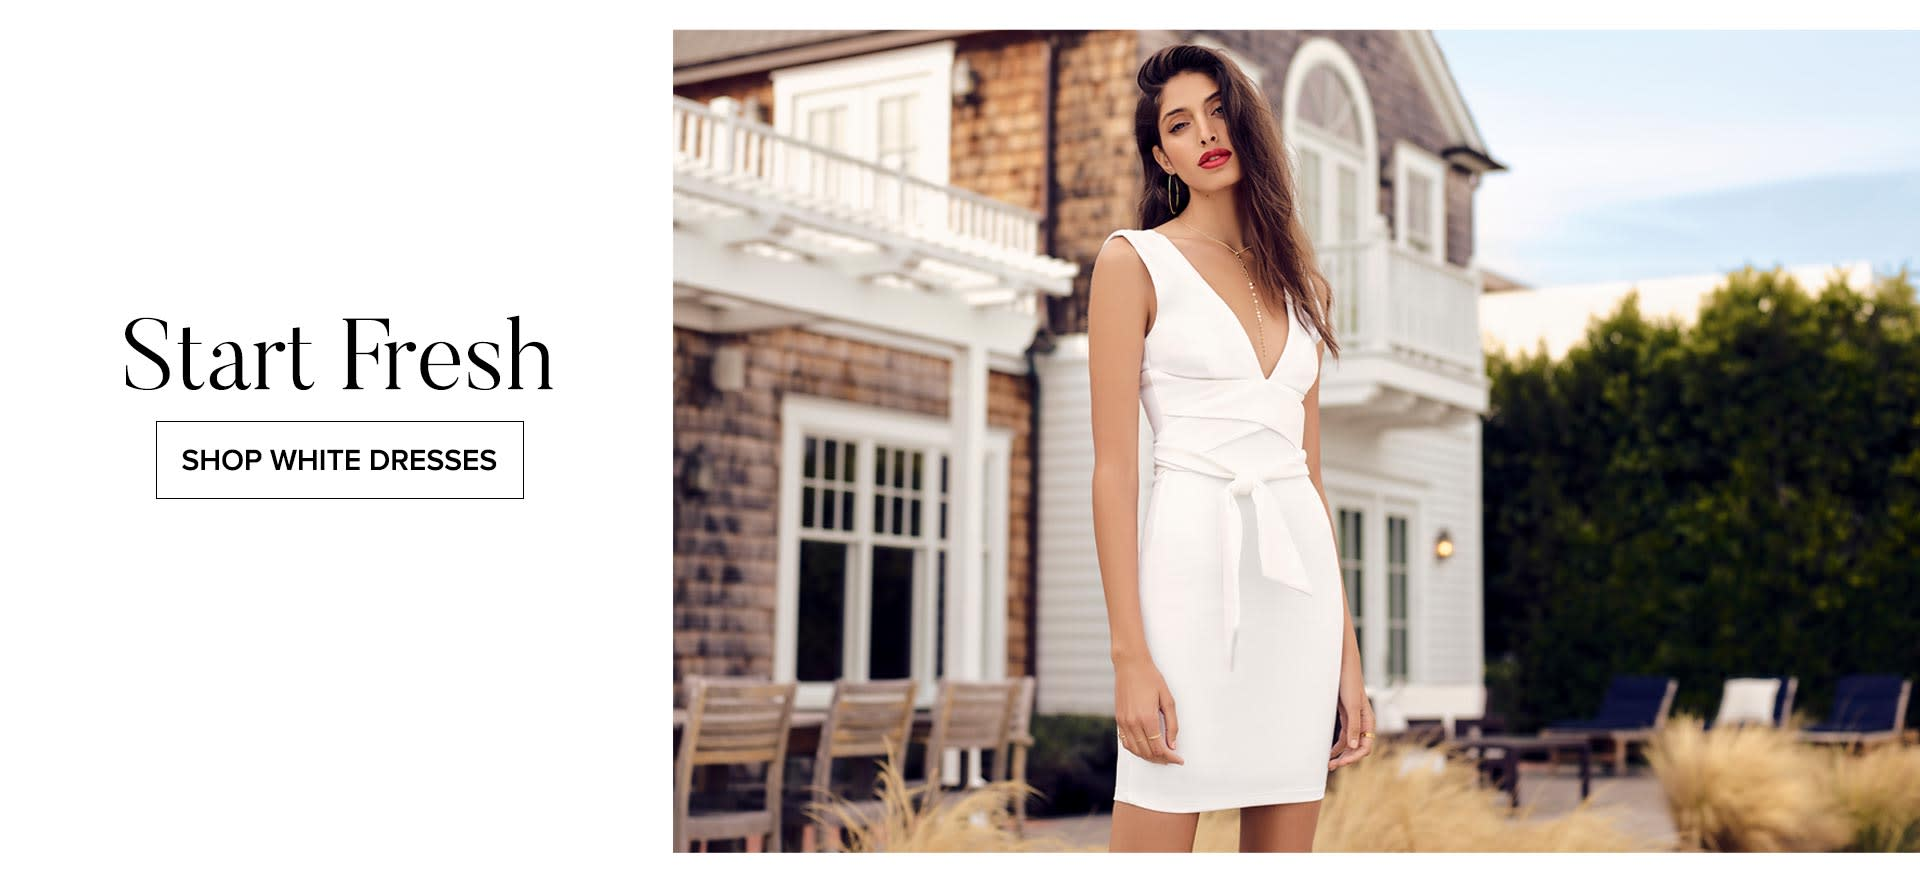 Shop White Dresses for Women.